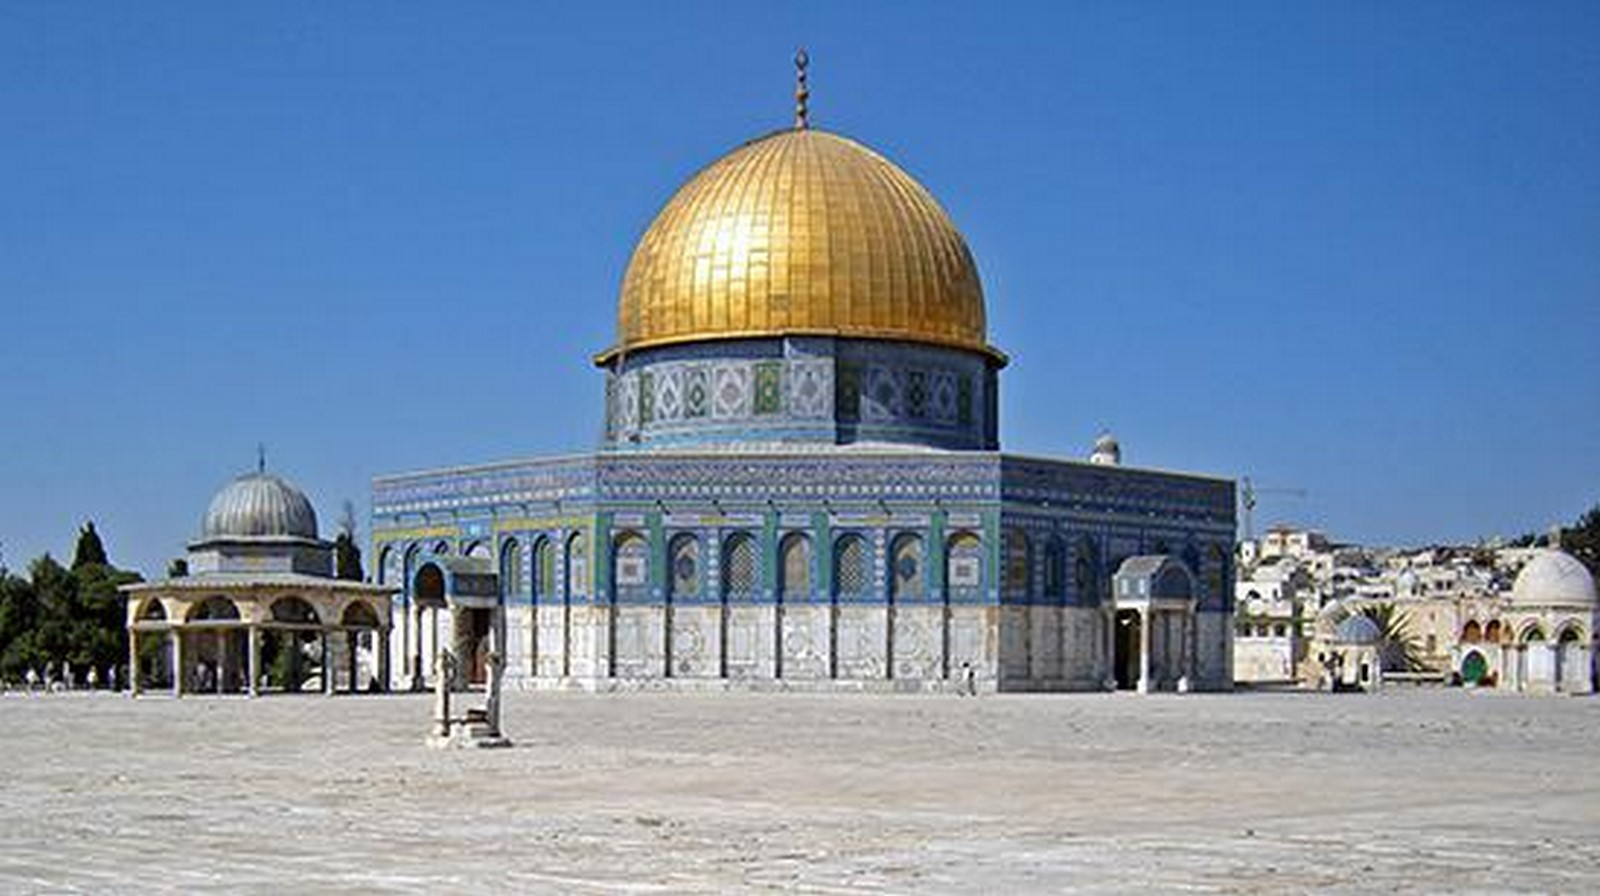 Dome of the rock - Sheet2